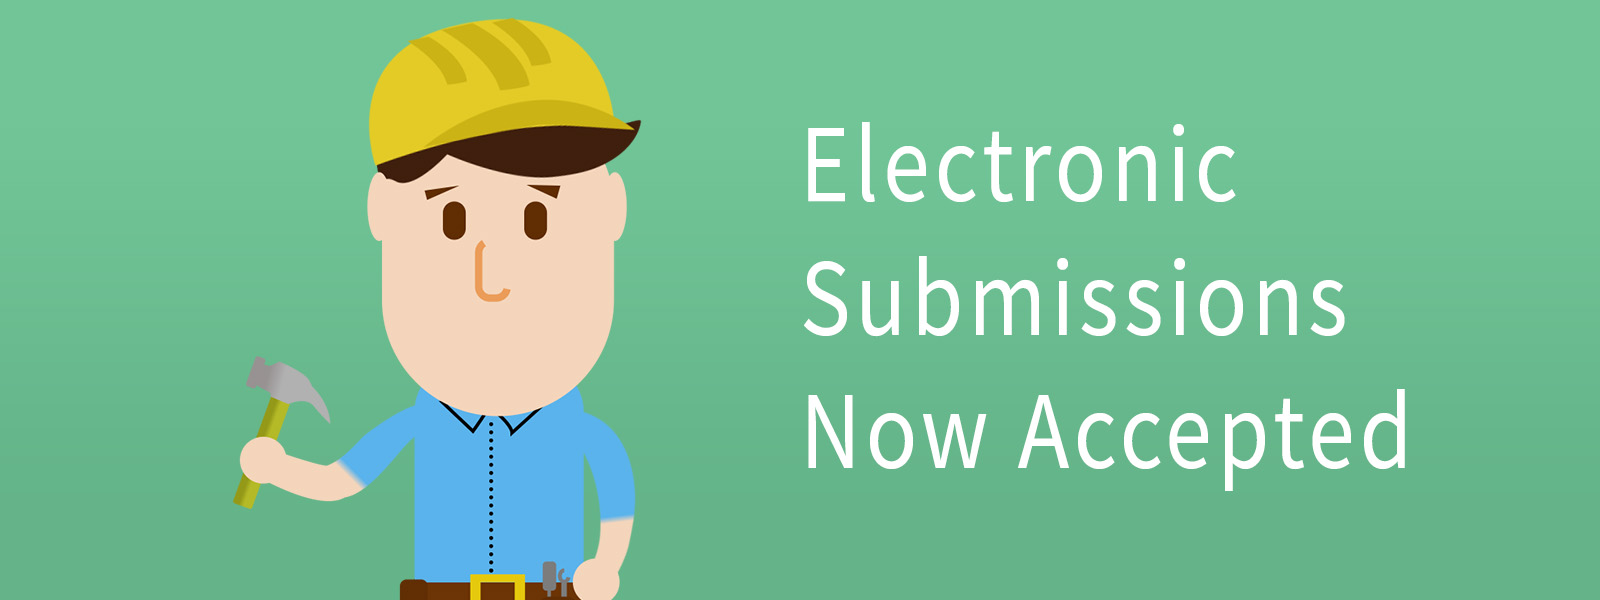 Electronic Submissions now accepted